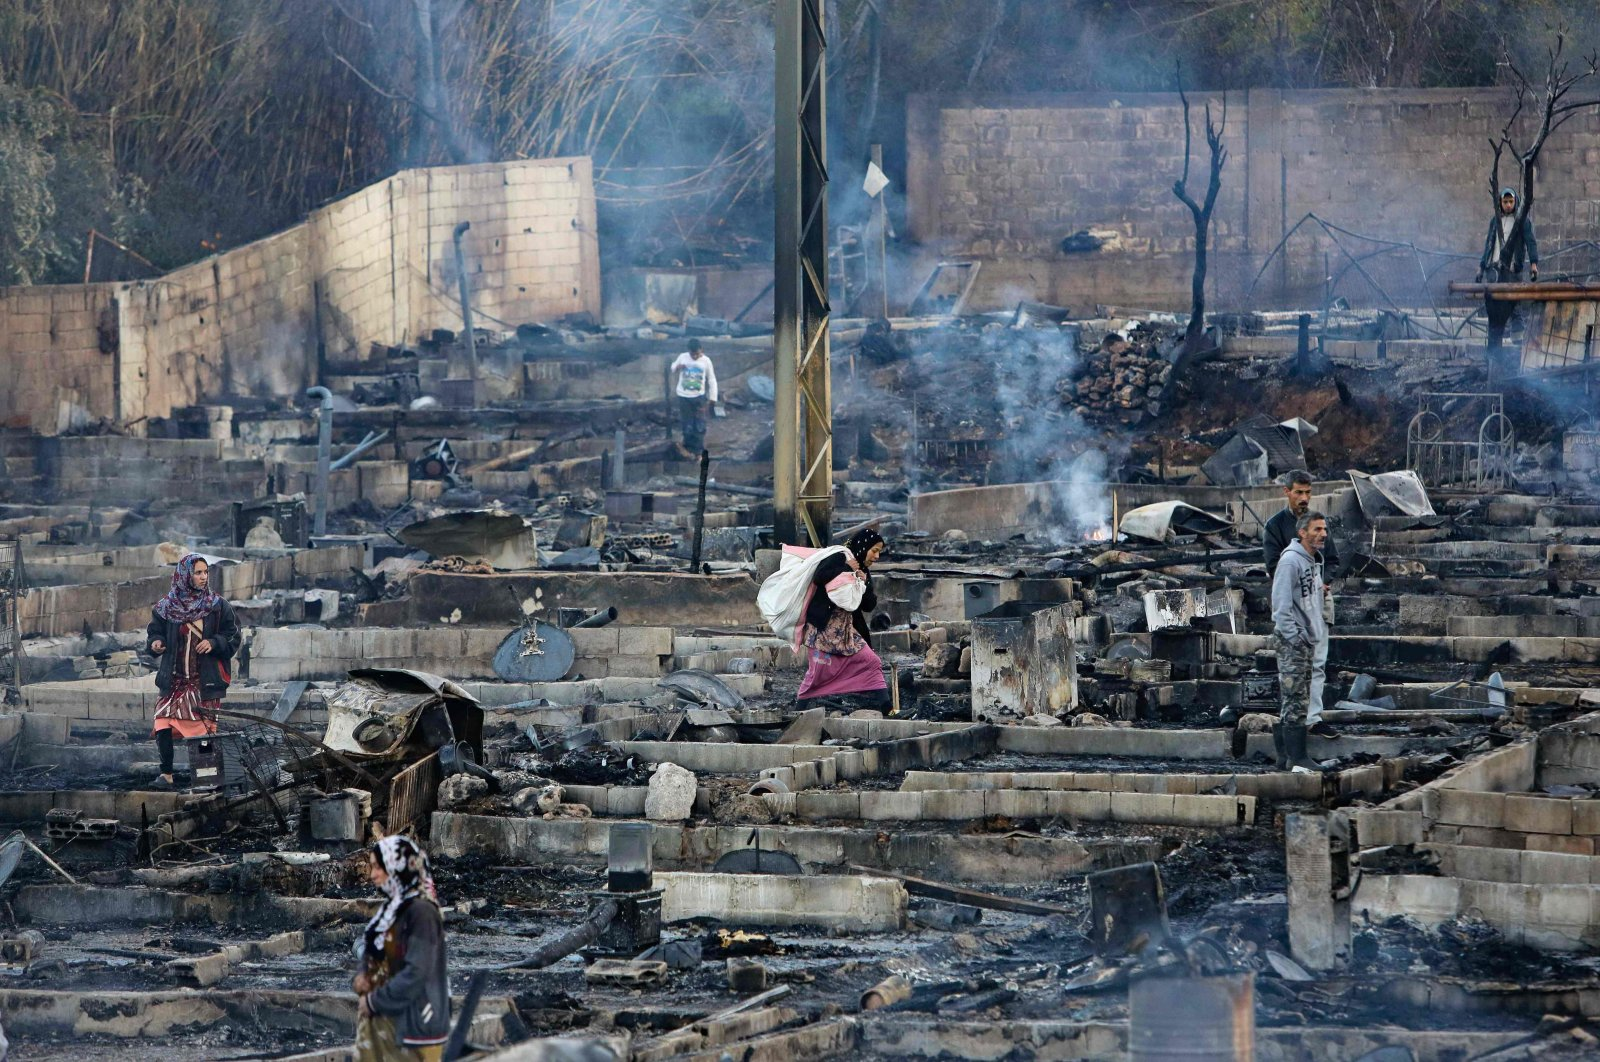 Syrian refugees salvage belongings from the wreckage of their shelters at a camp set on fire overnight in the northern Lebanese town of Bhanine following a fight between members of the camp and a local Lebanese family, Dec. 27, 2020. (AFP Photo)